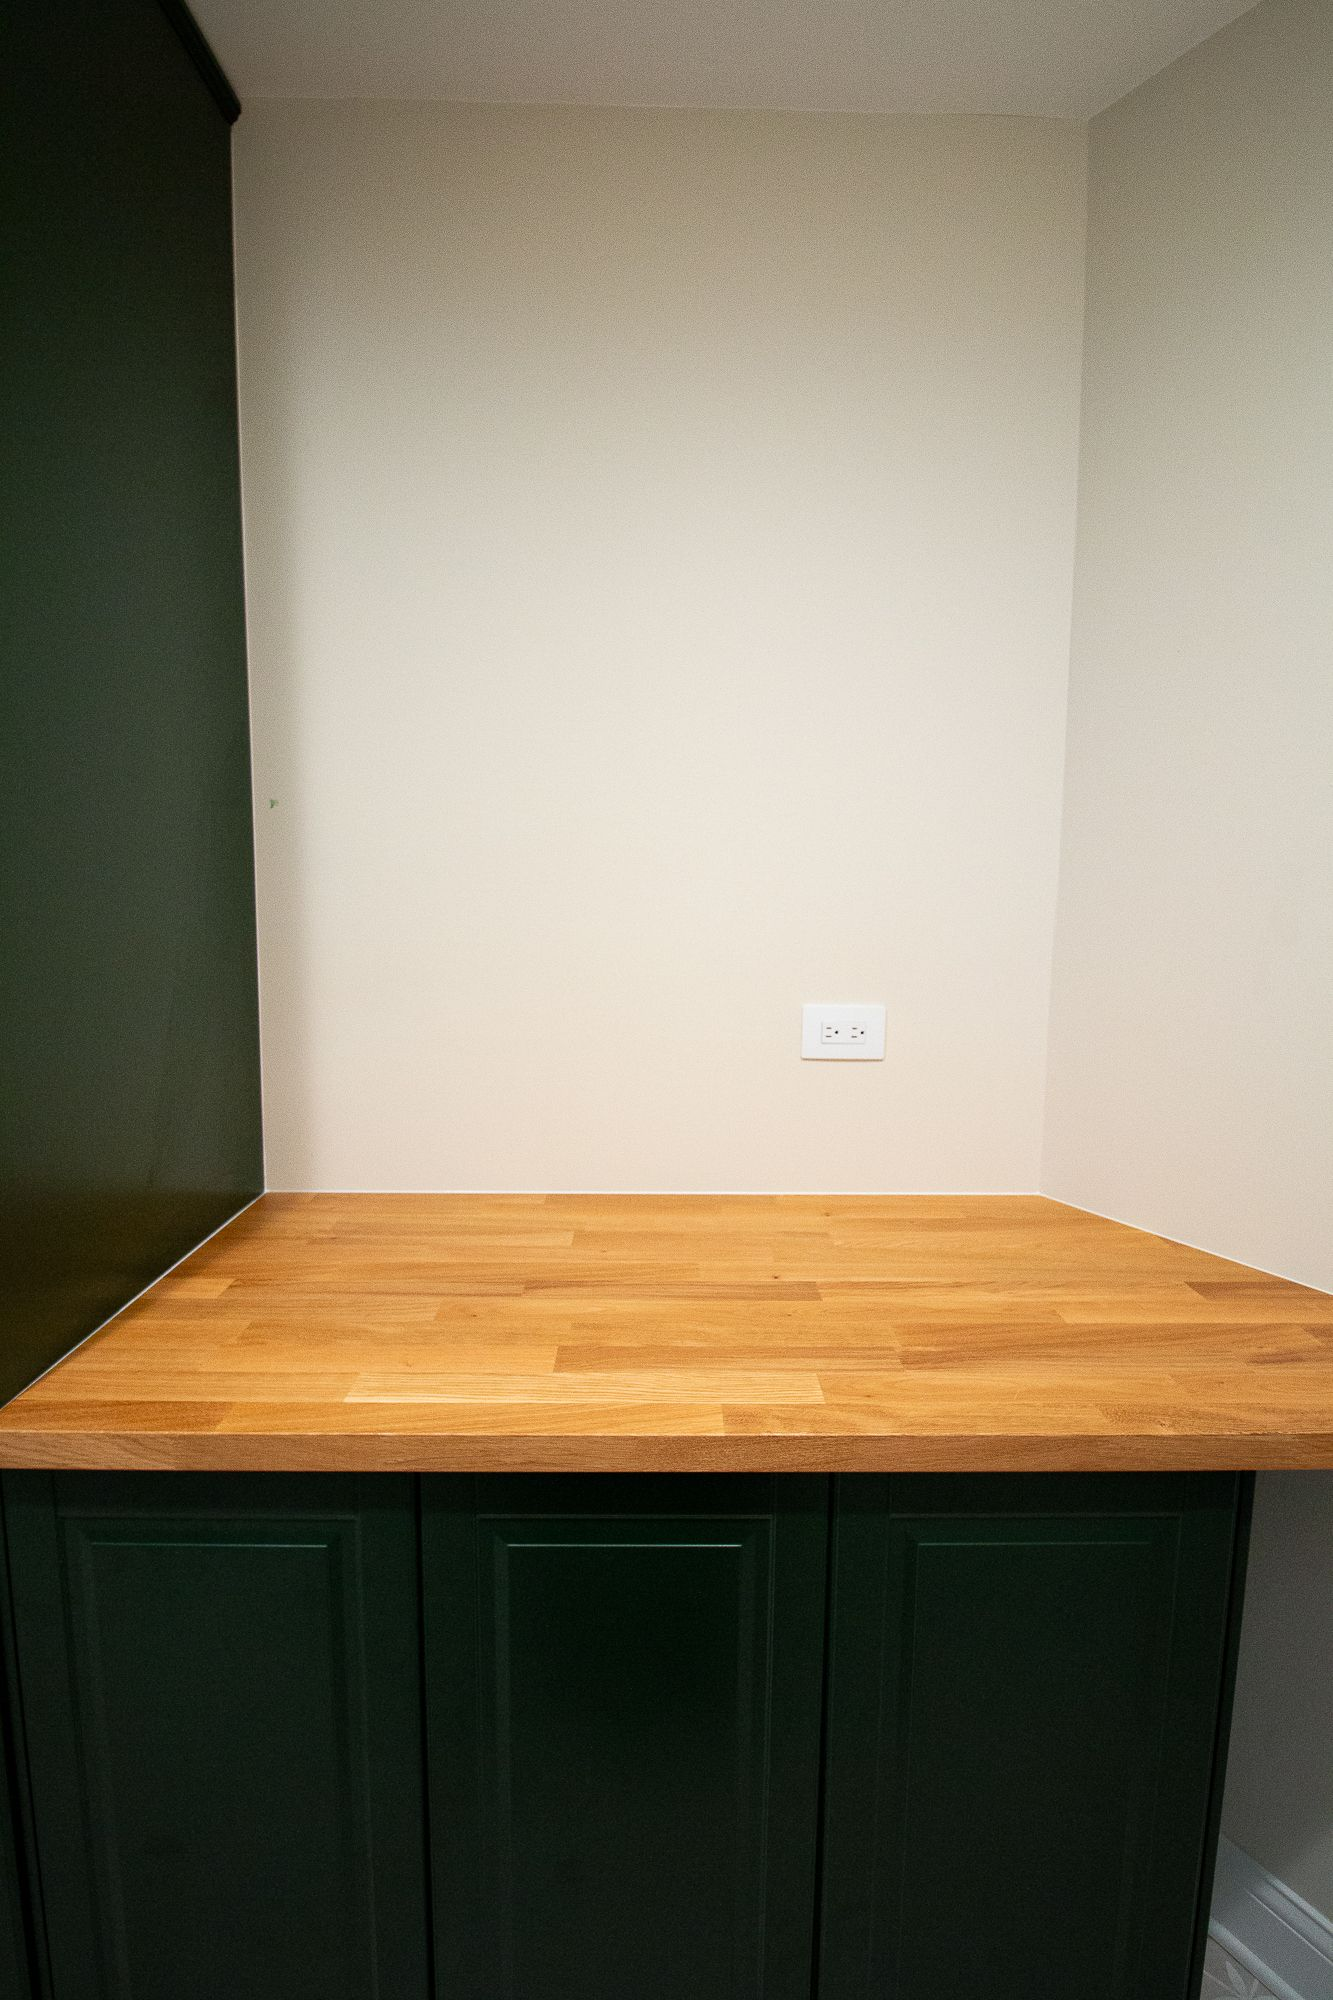 Tips To Install An Ikea Butcher Block Countertop Ikea Butcher